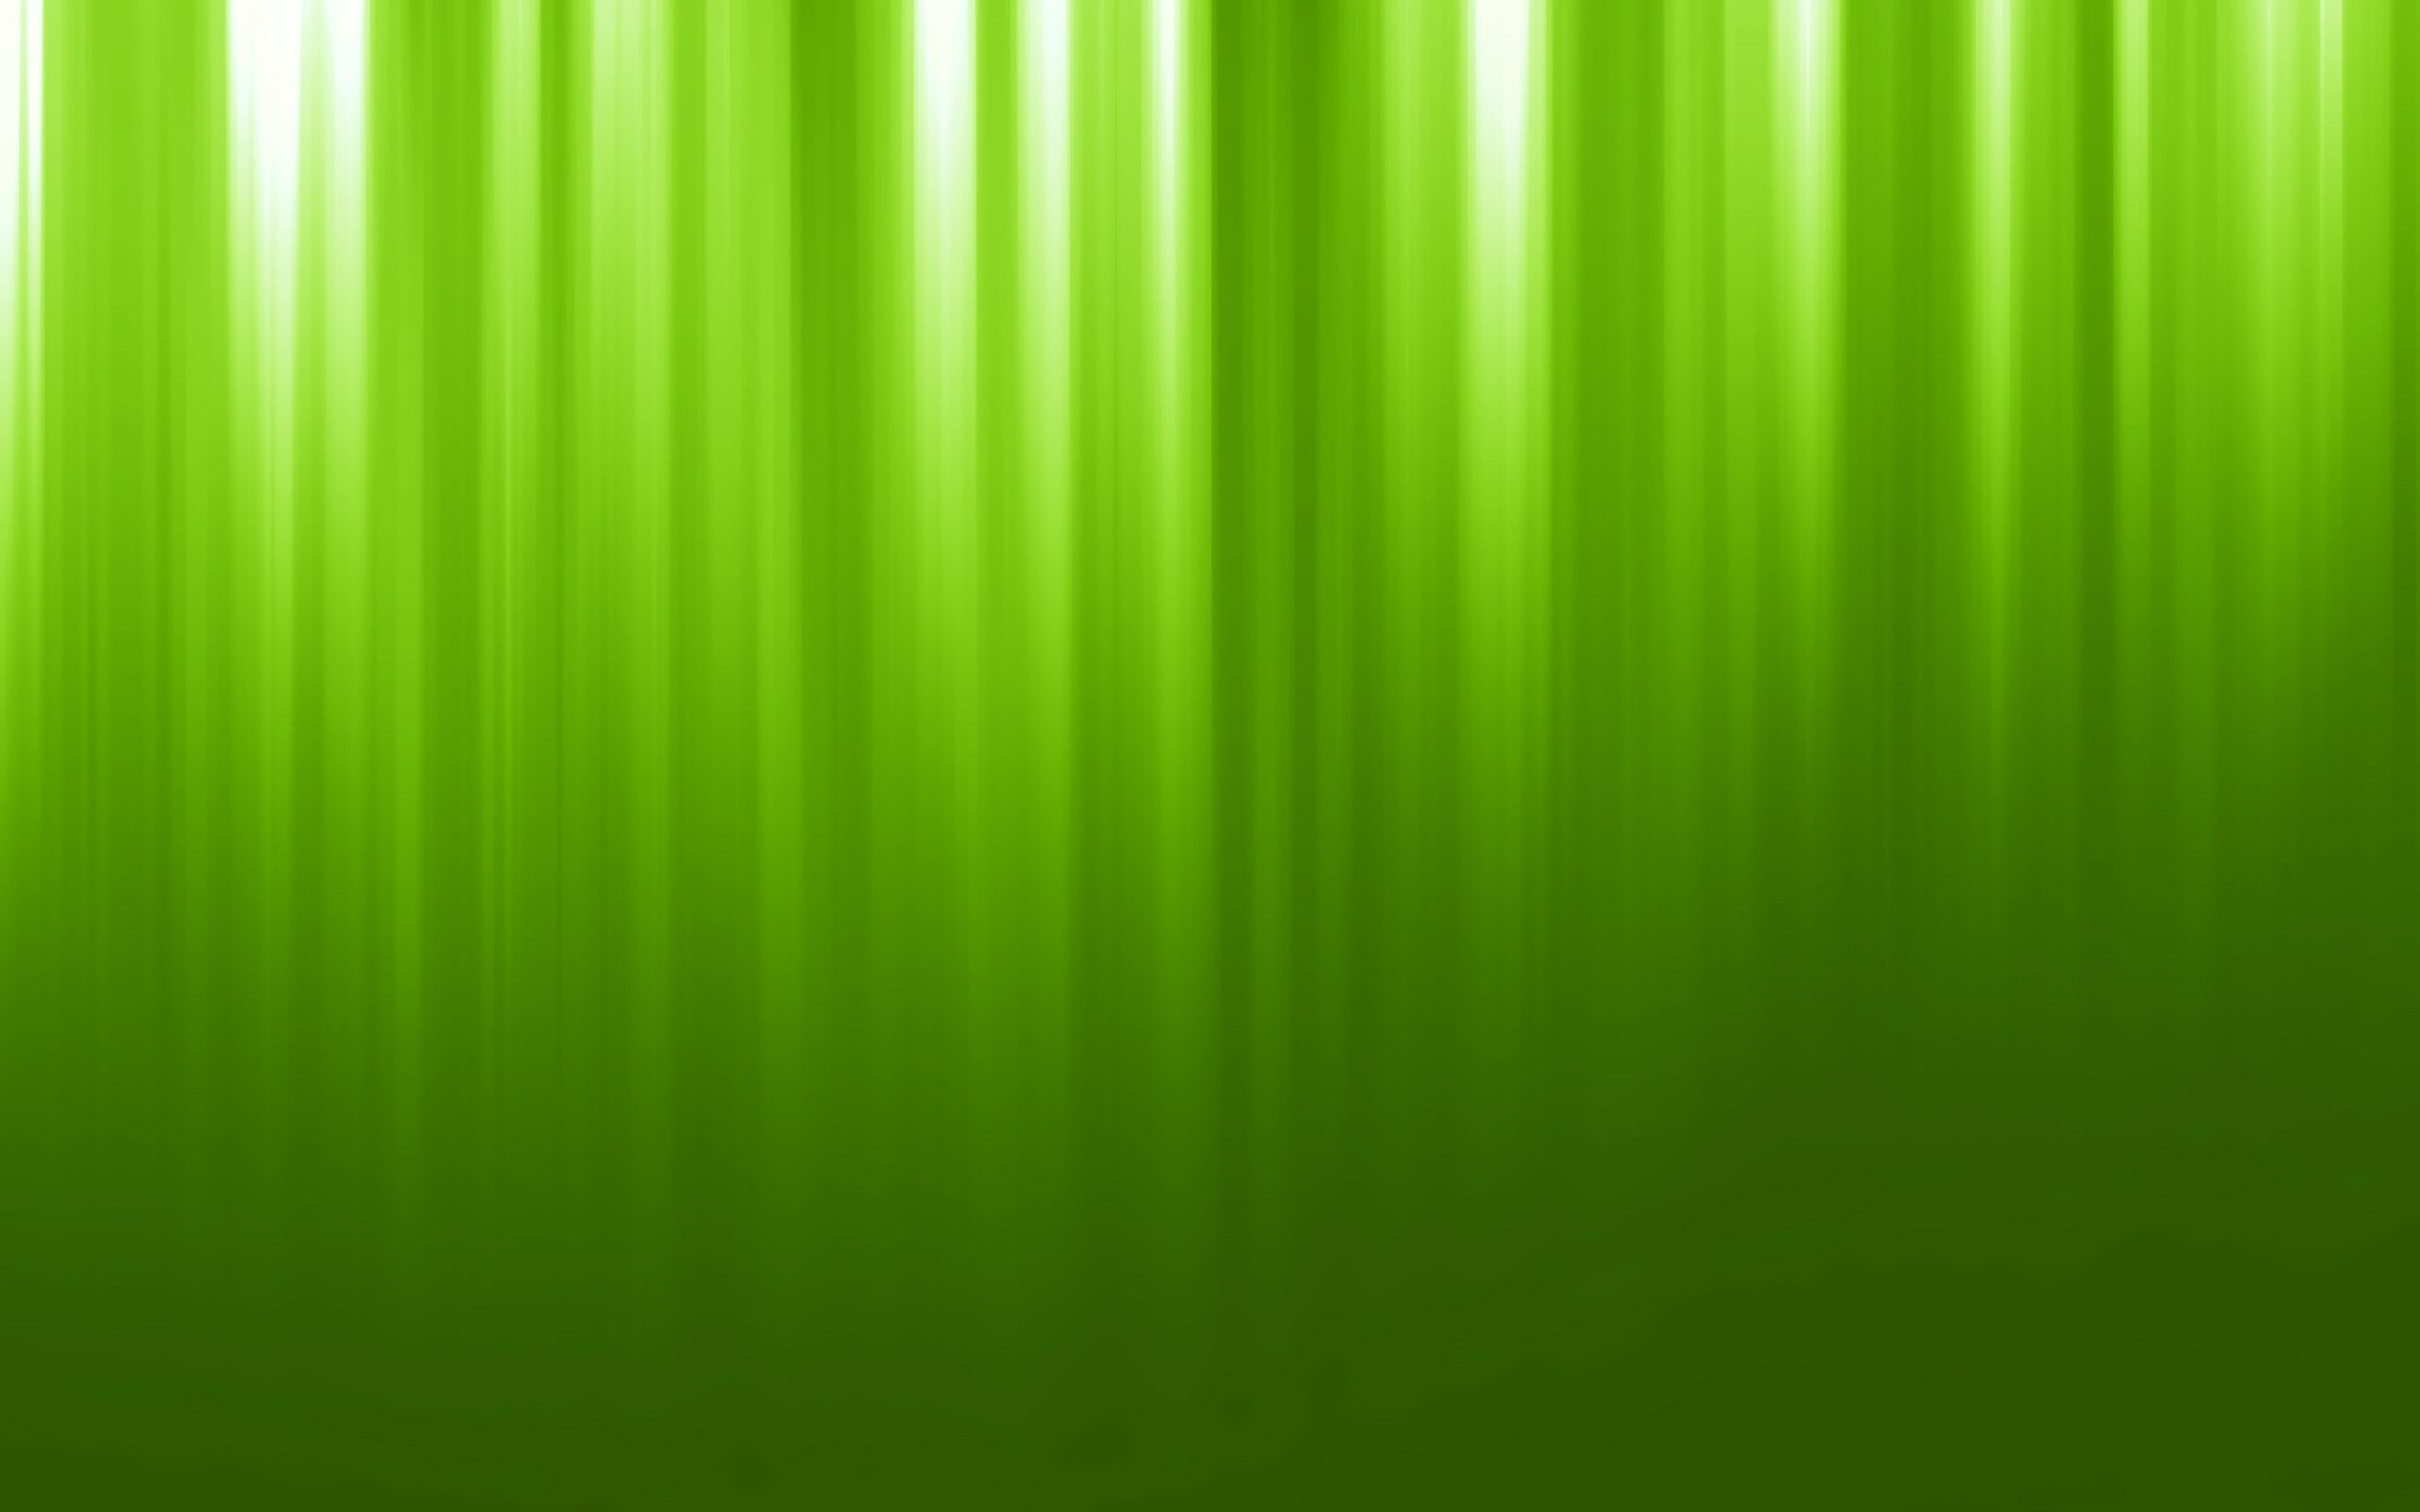 Green Wallpaper HD Image Pics Wallpapers Pinterest